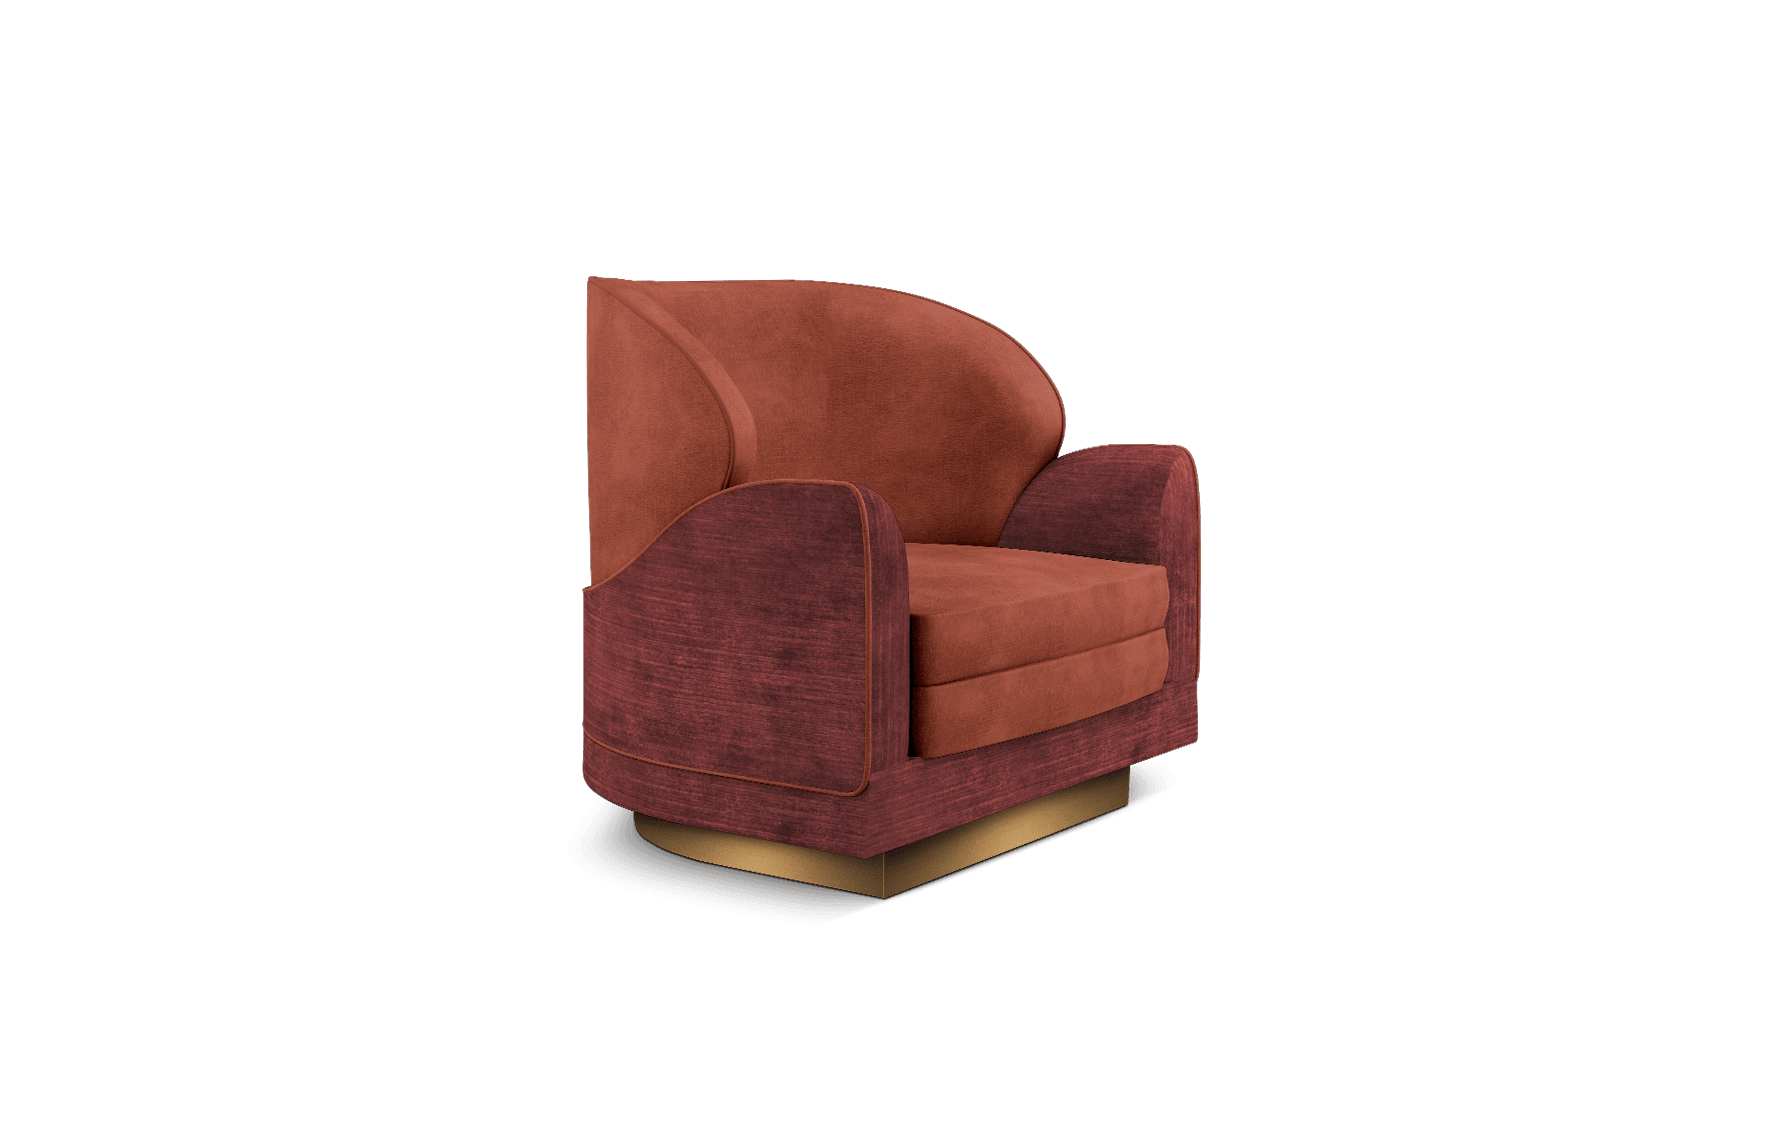 Awe Inspiring Jayne Mid Century Modern Armchair By Ottiu Beyond Upholstery Ocoug Best Dining Table And Chair Ideas Images Ocougorg